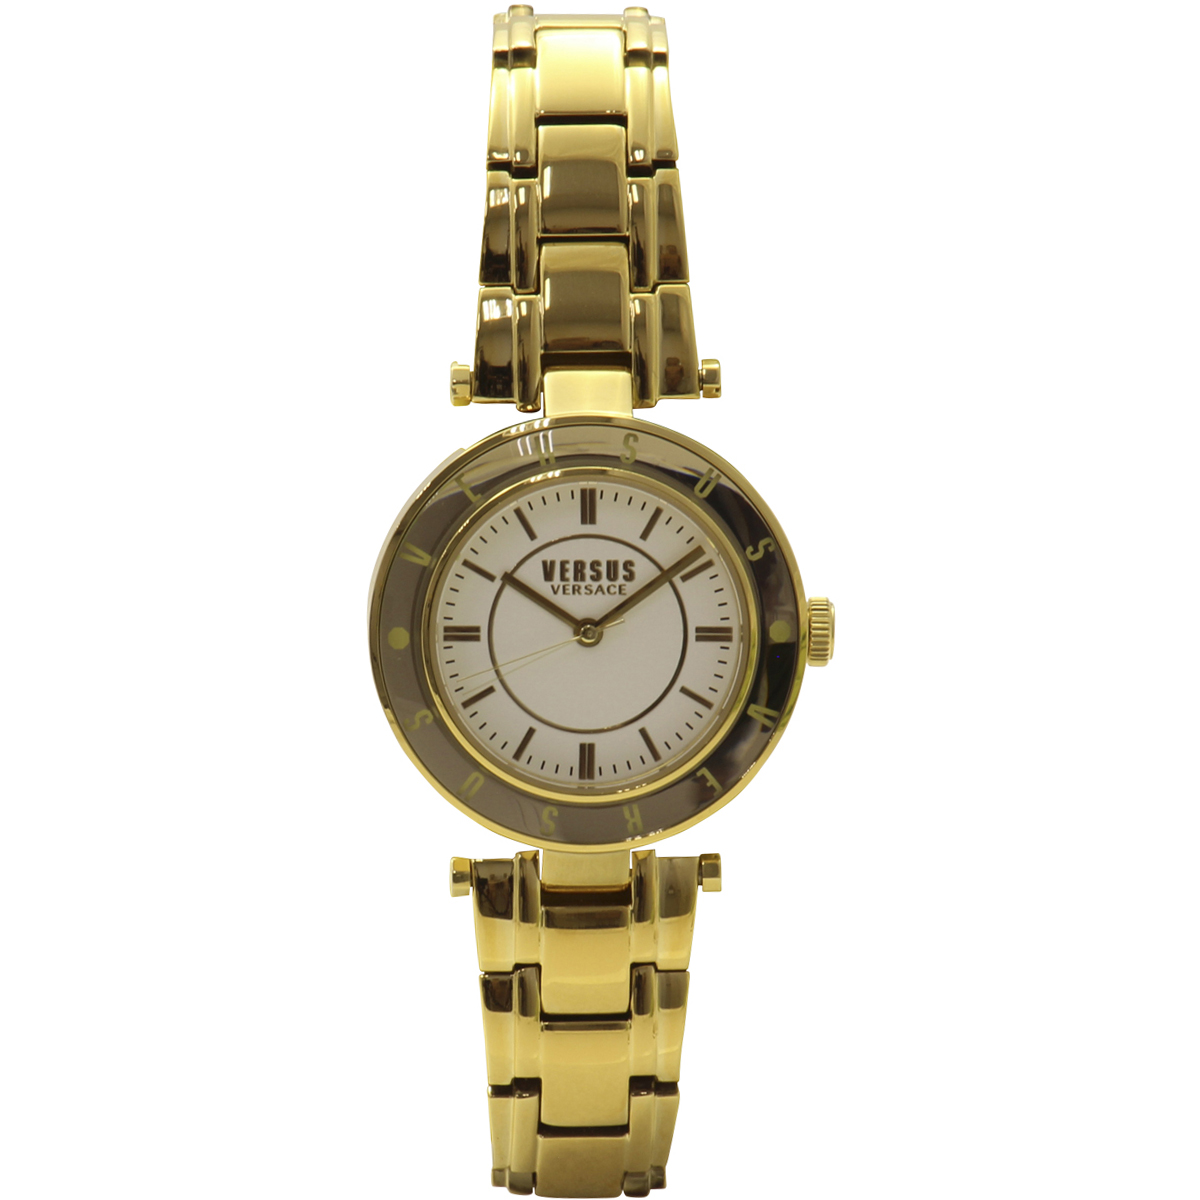 Versus By Versace Women's SP8200015 Yellow Gold/White Analog Watch